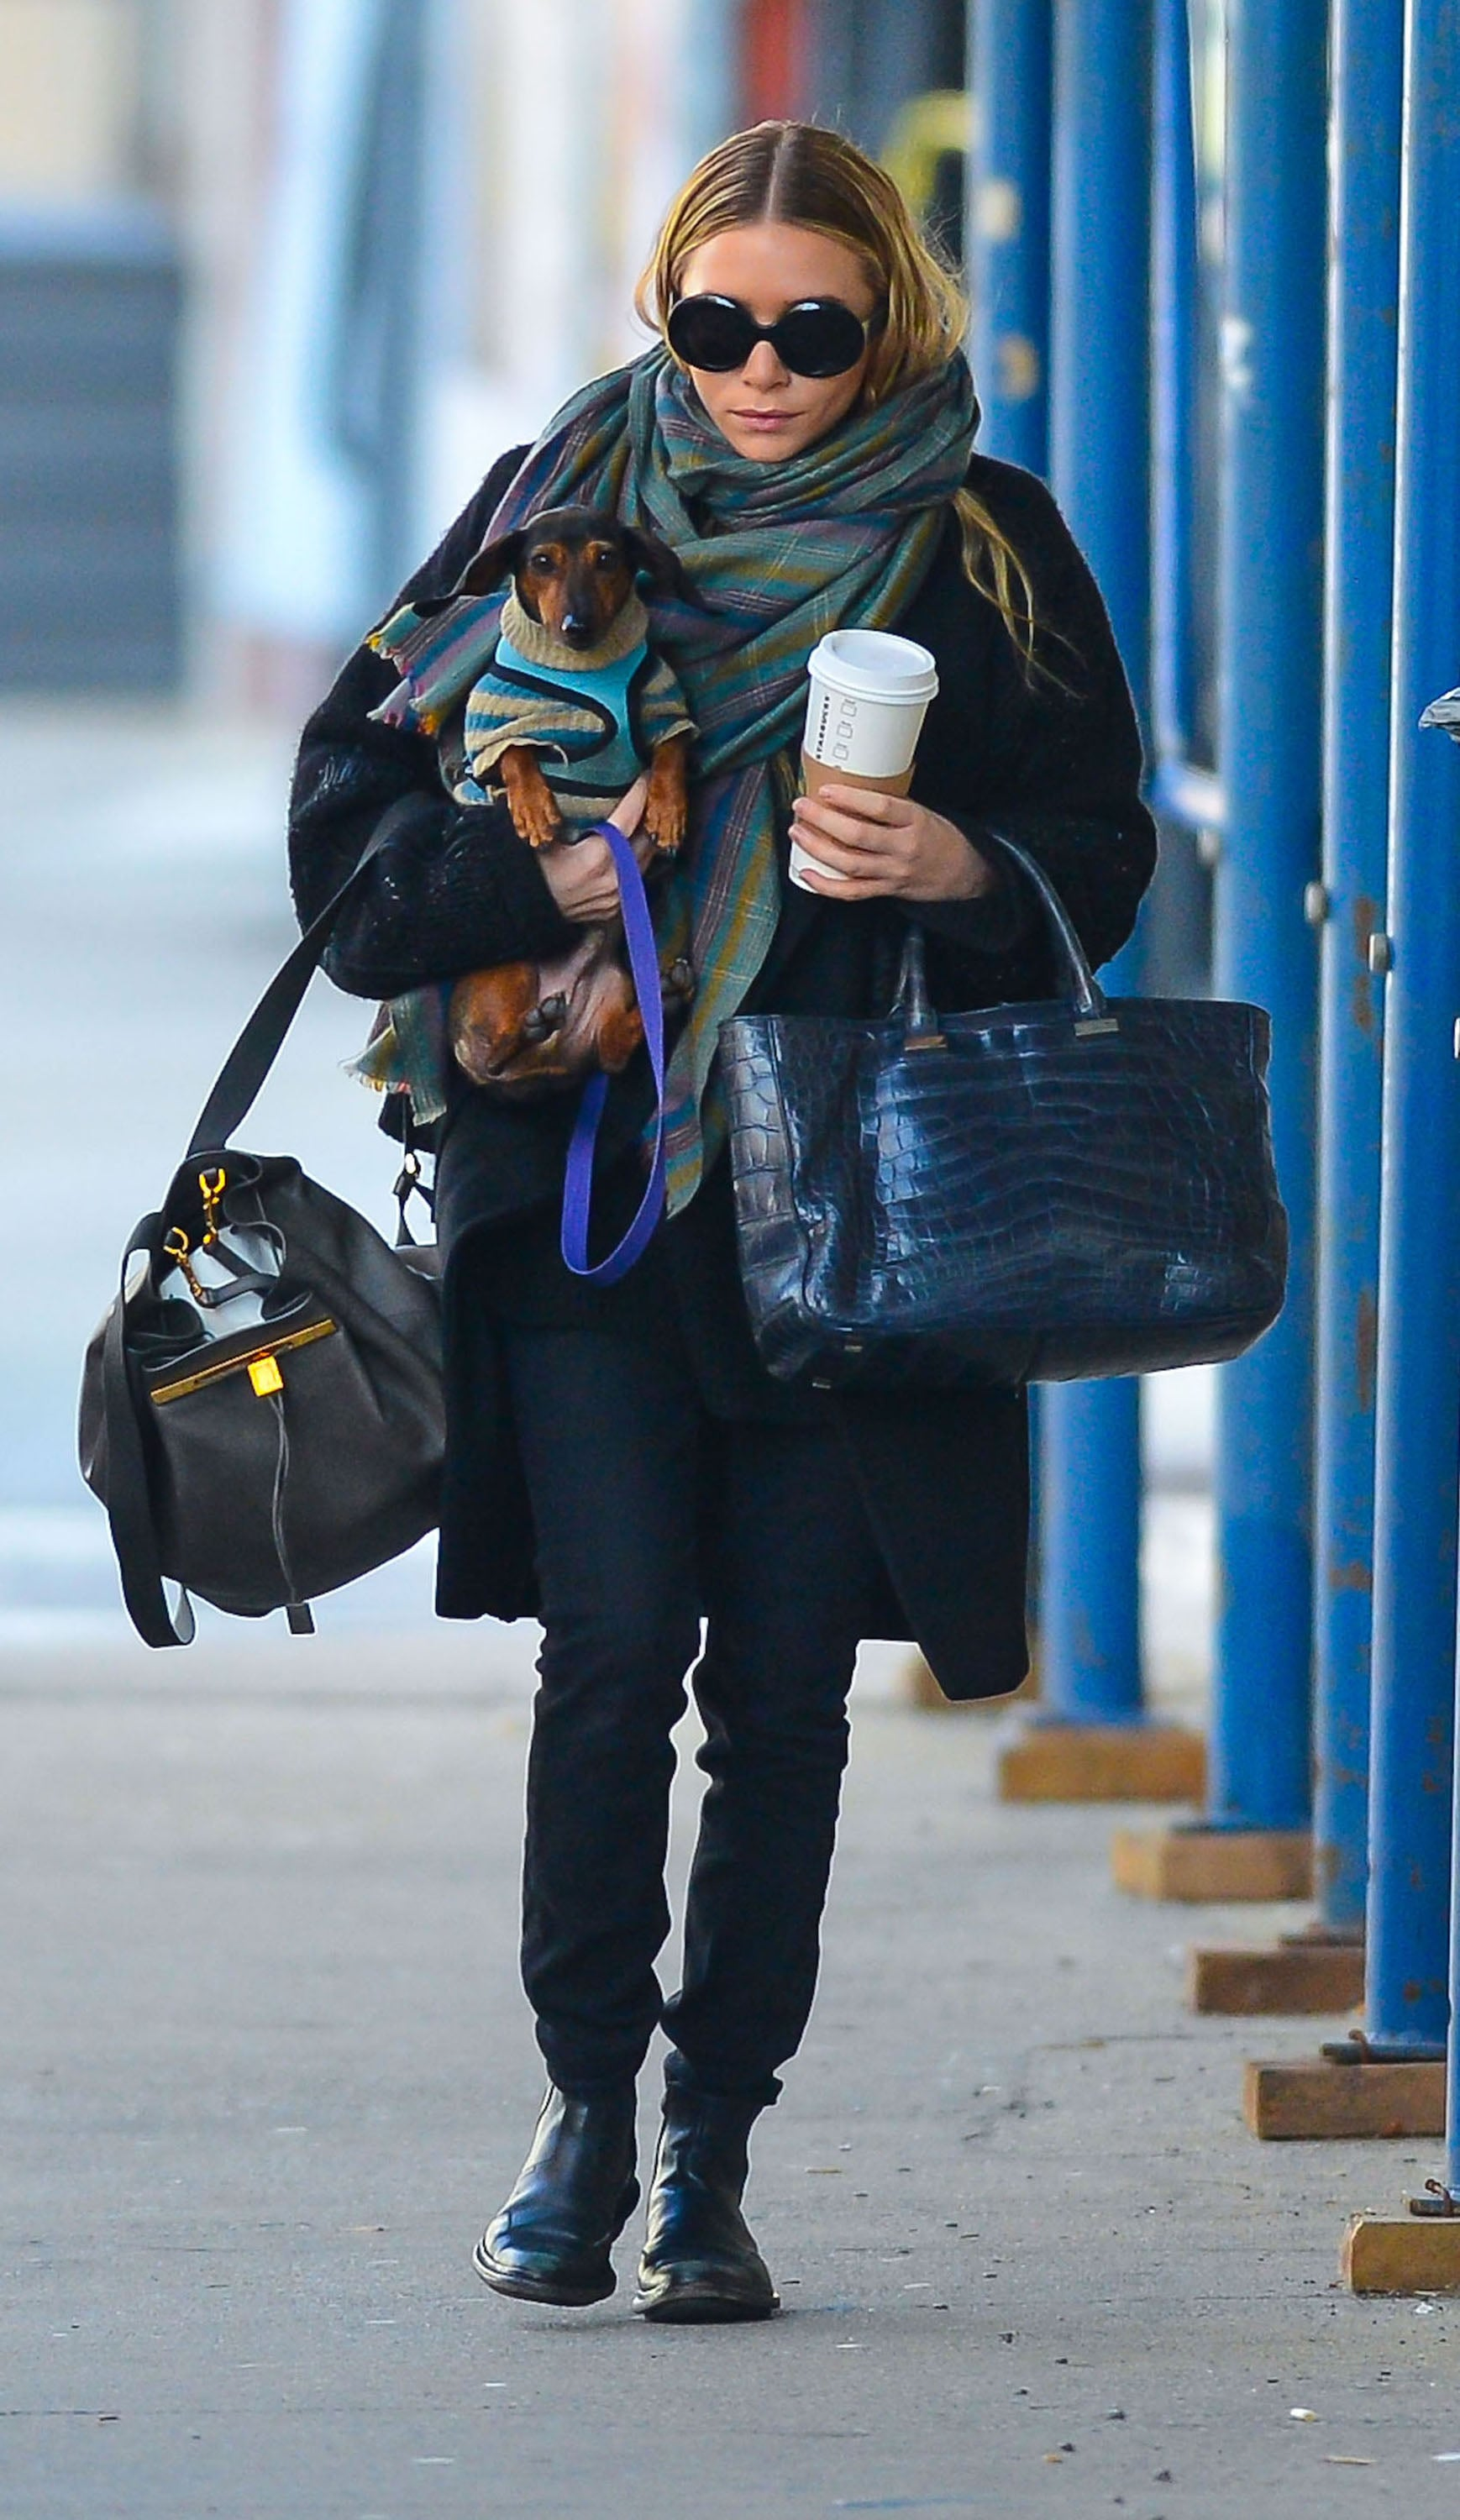 Ashley Olsen had her hands full on a walk in NYC.